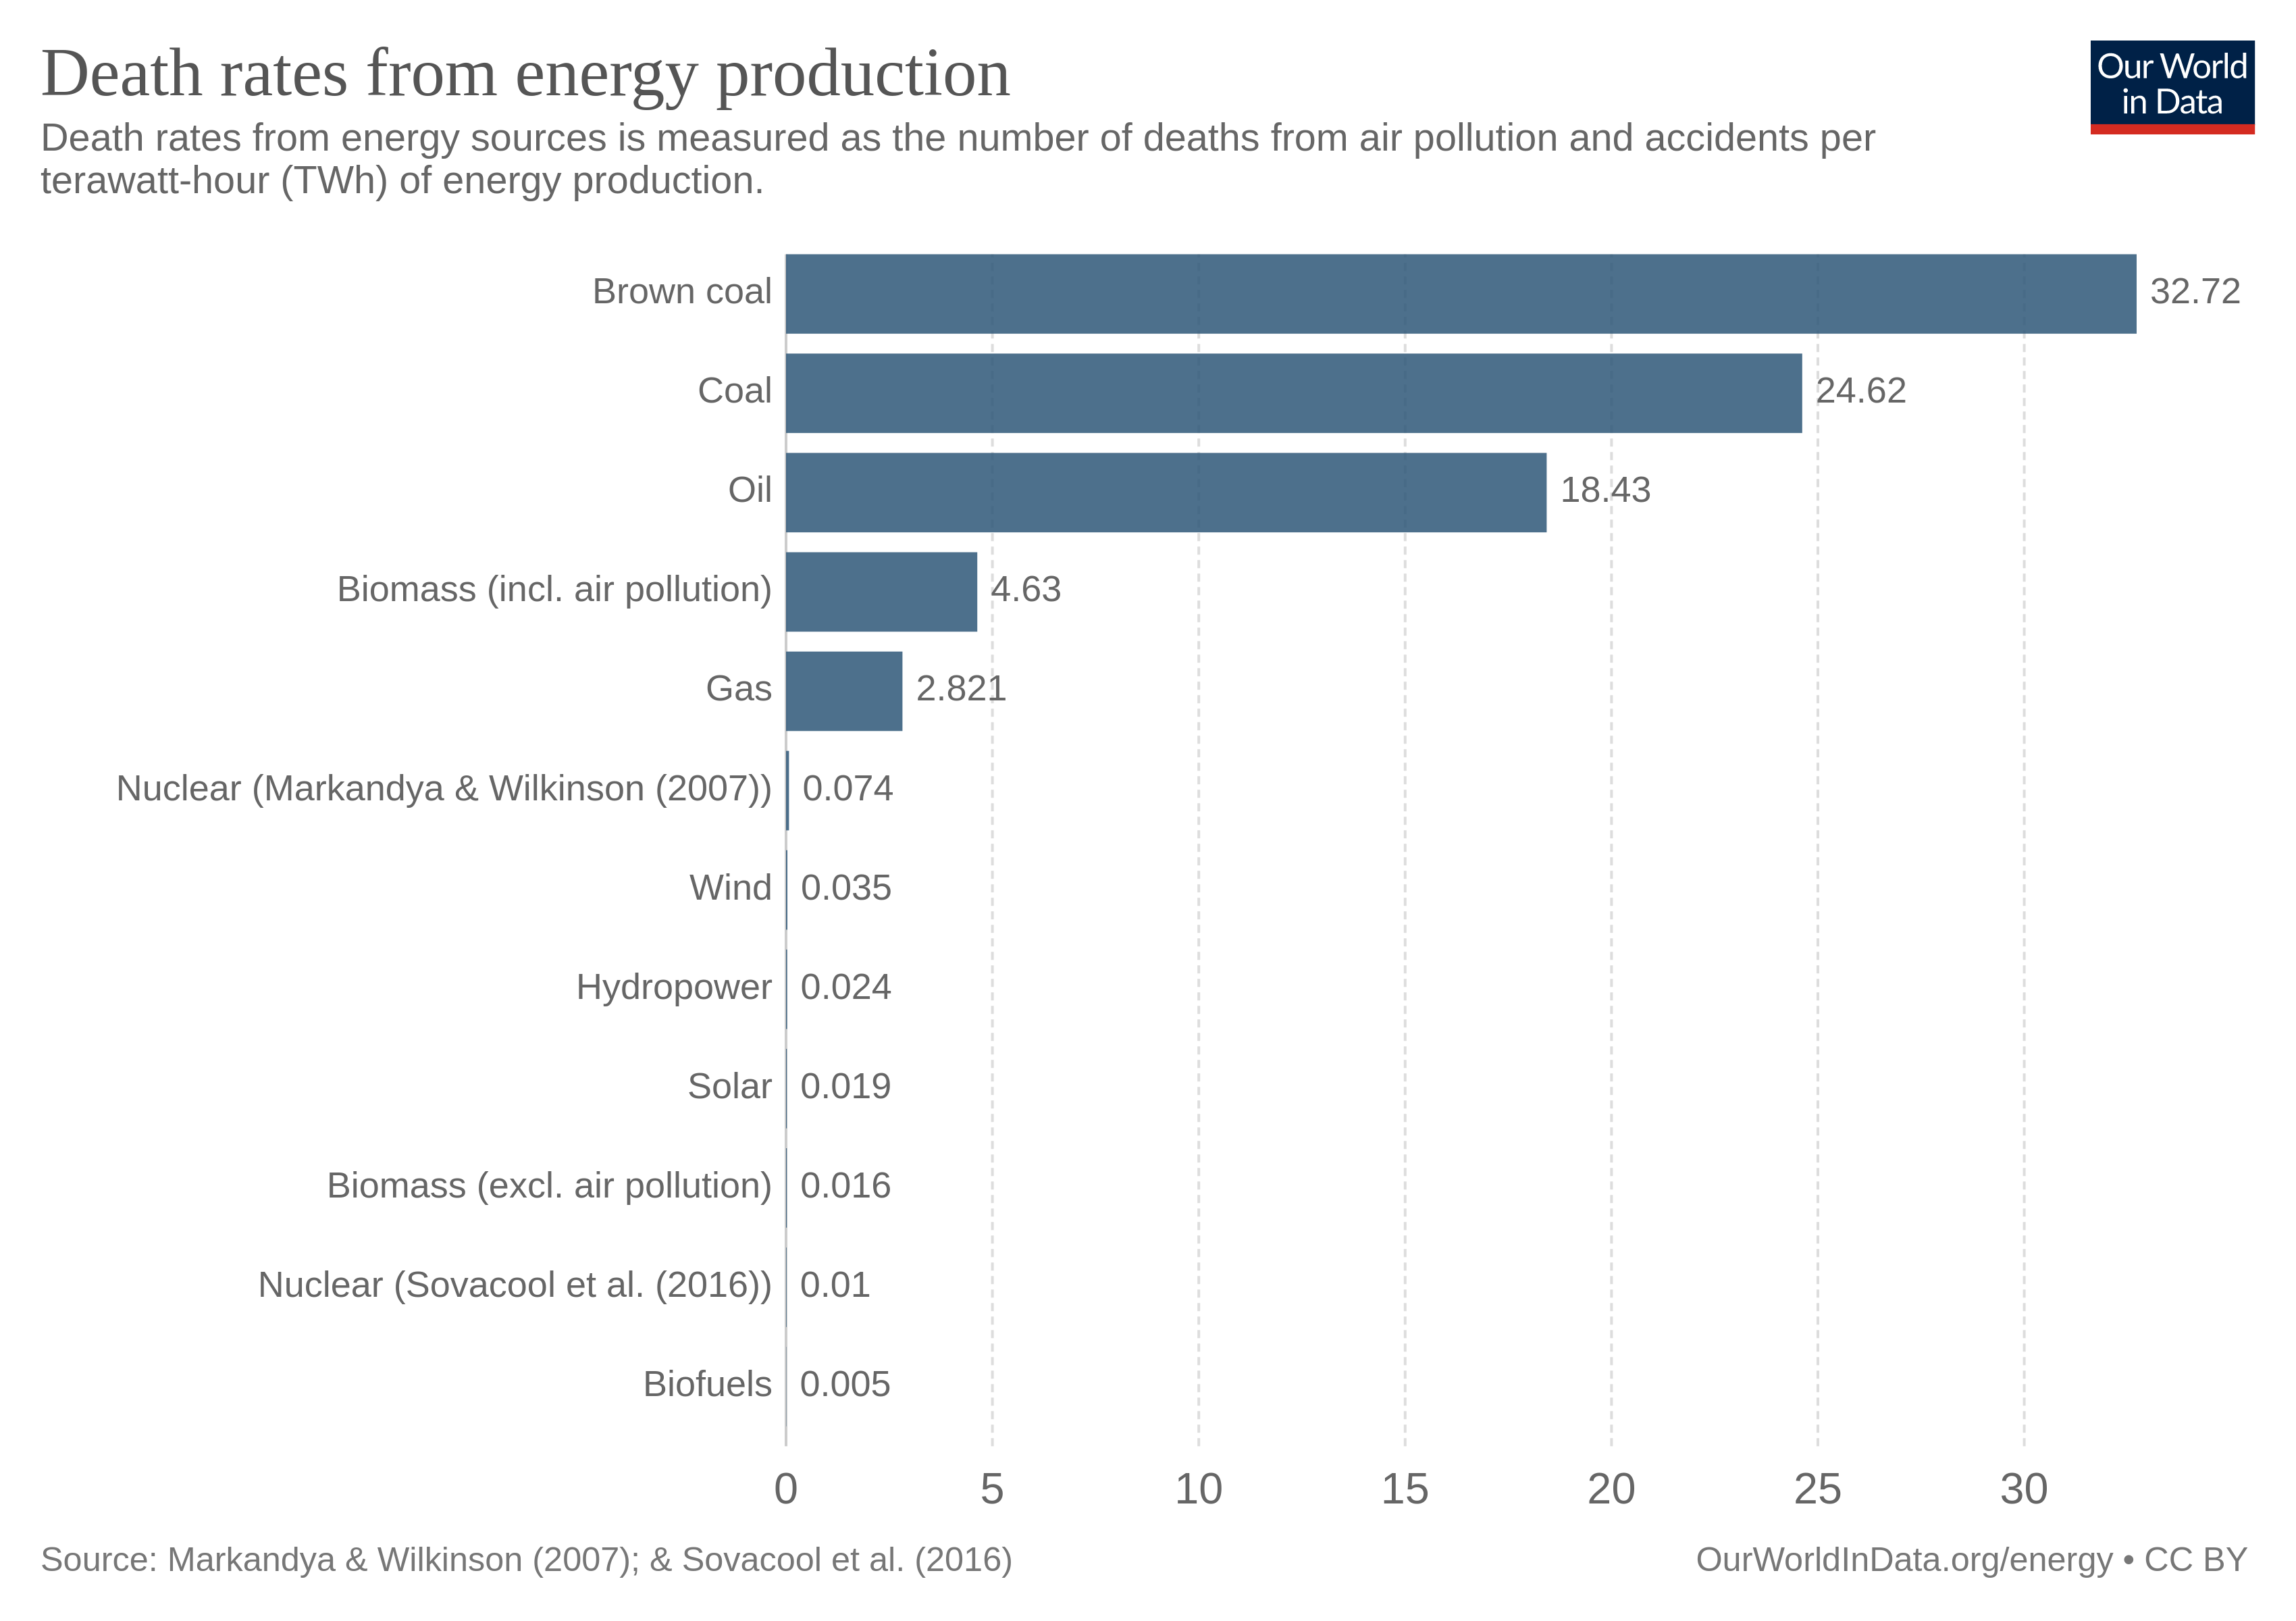 Deaths per TWh by energy source